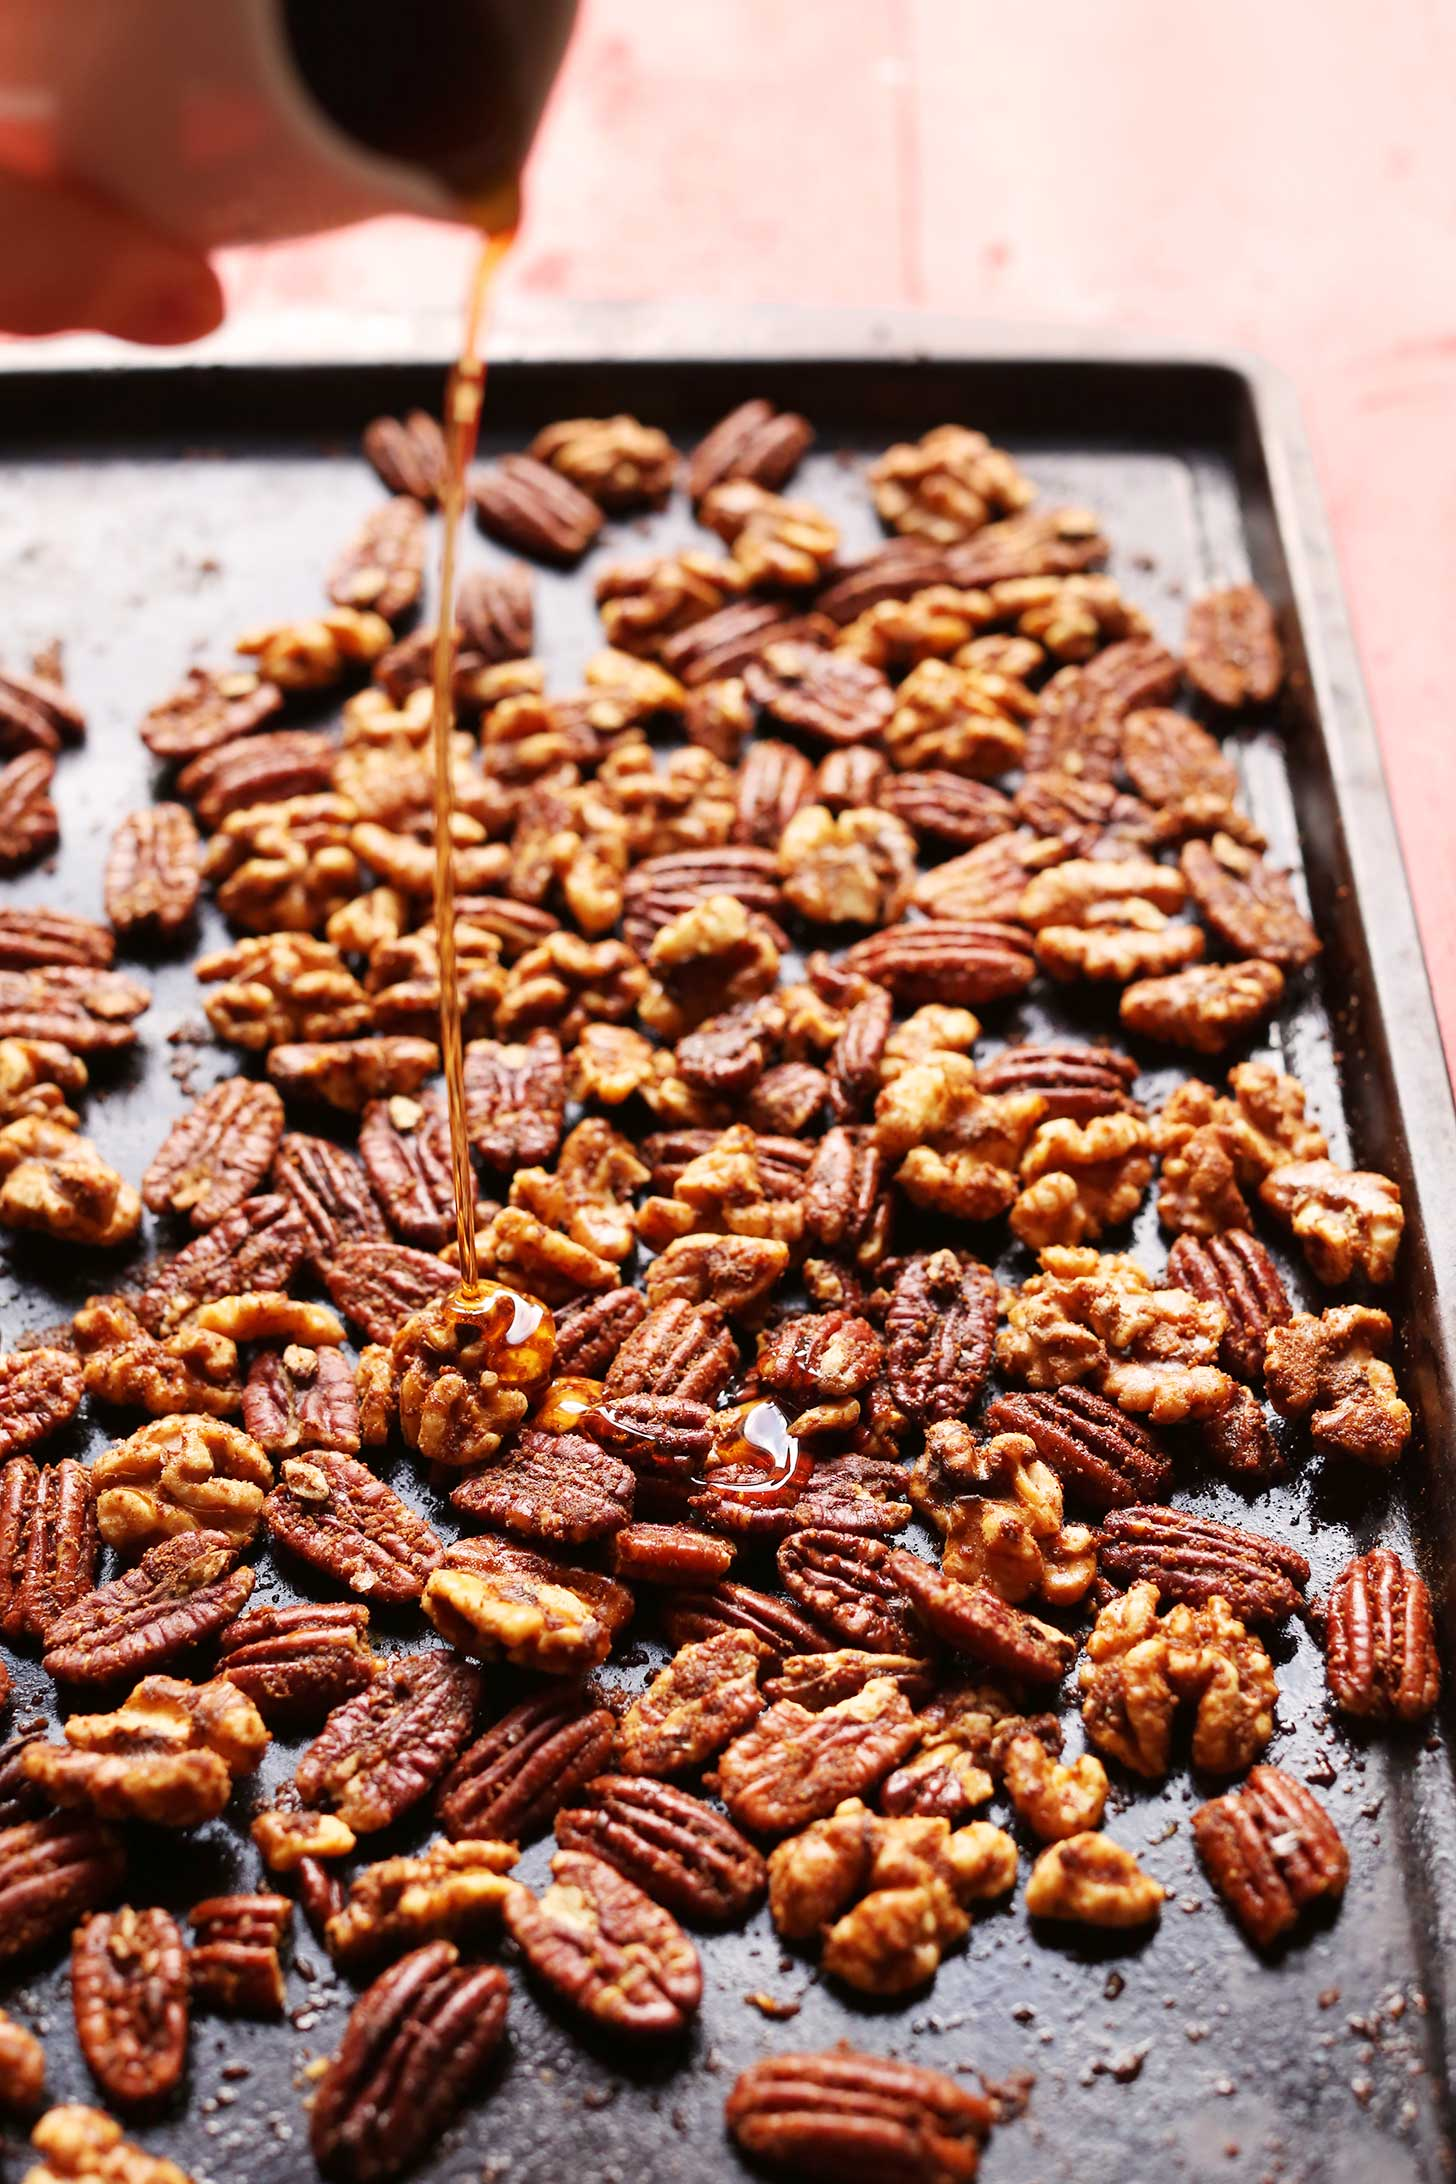 Pouring syrup onto nuts for our homemade holiday gift idea of Roasted Candied Nuts